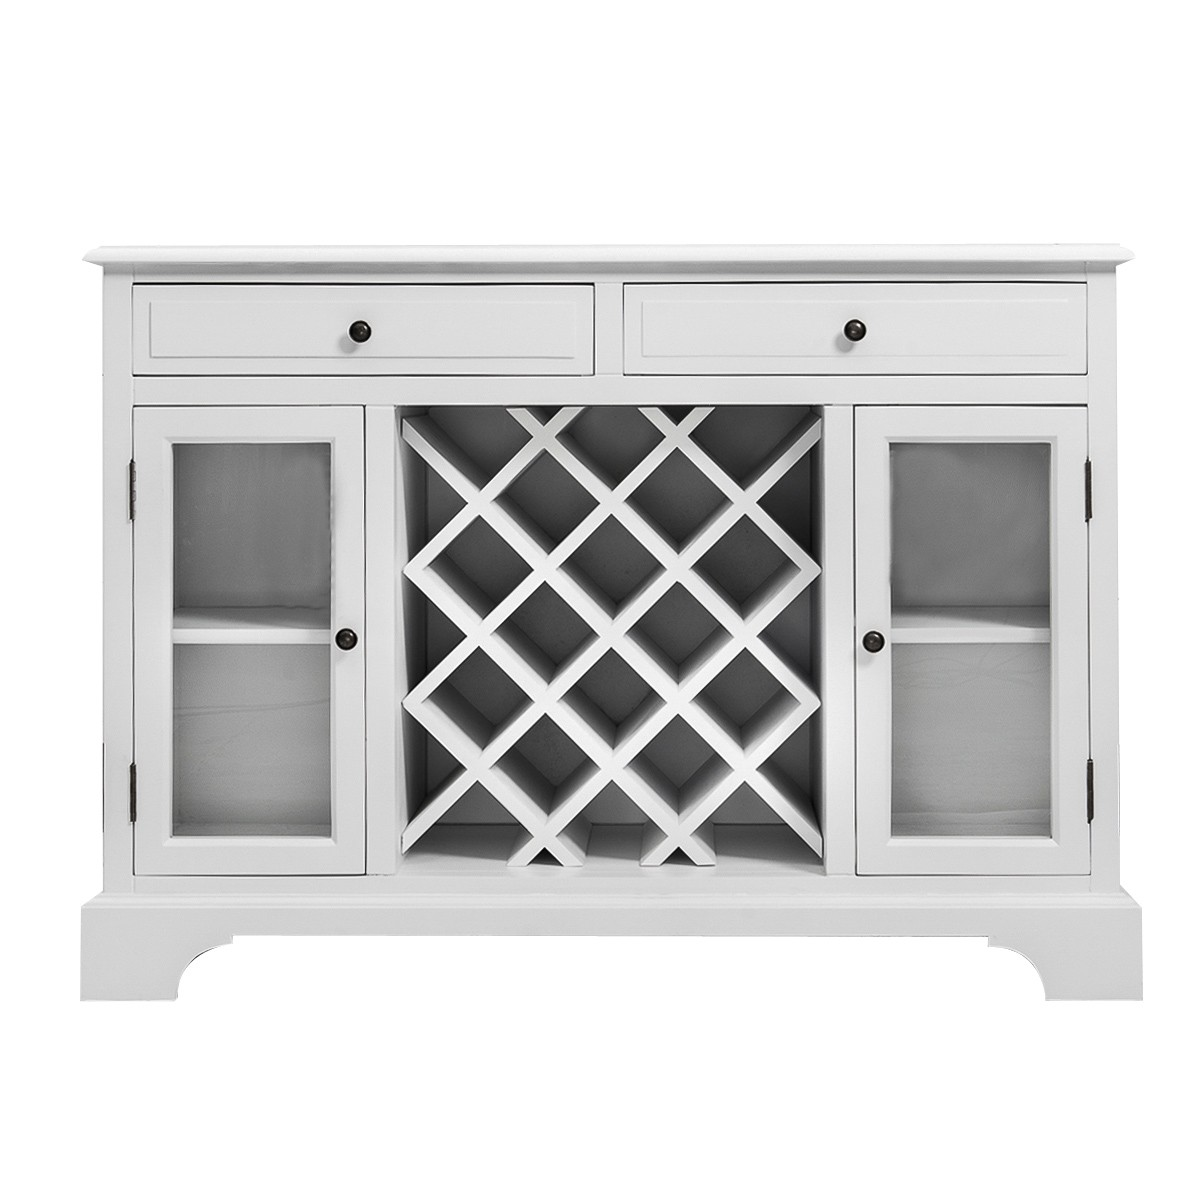 Picture of: Hamptons Modern 2 Drawer 2 Glass Door Wine Rack Sideboard Buffet Cabinet White Wholesales Direct